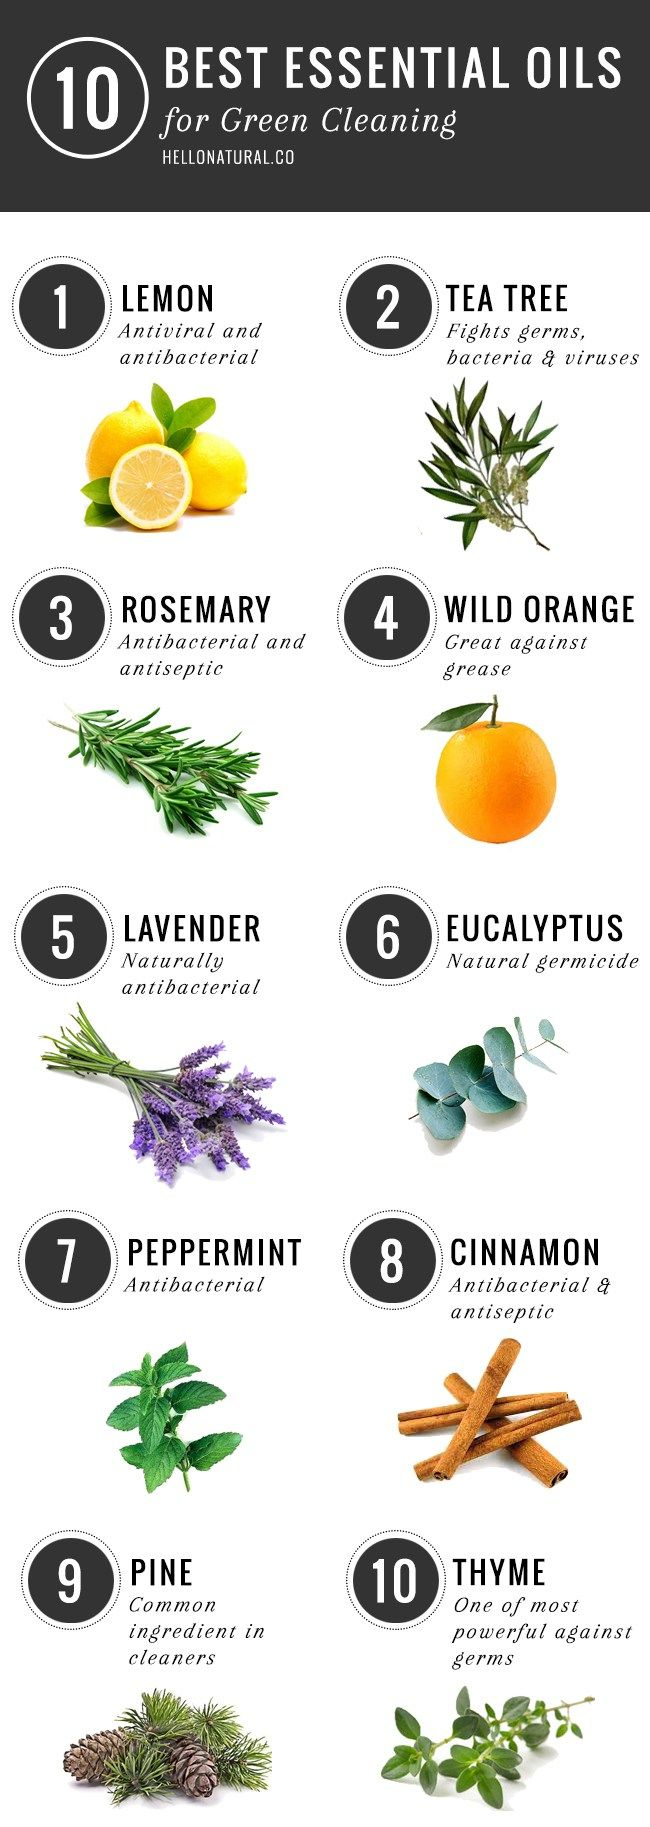 10 Best Essential Oils for Cleaning                                                                                                                                                                                 More